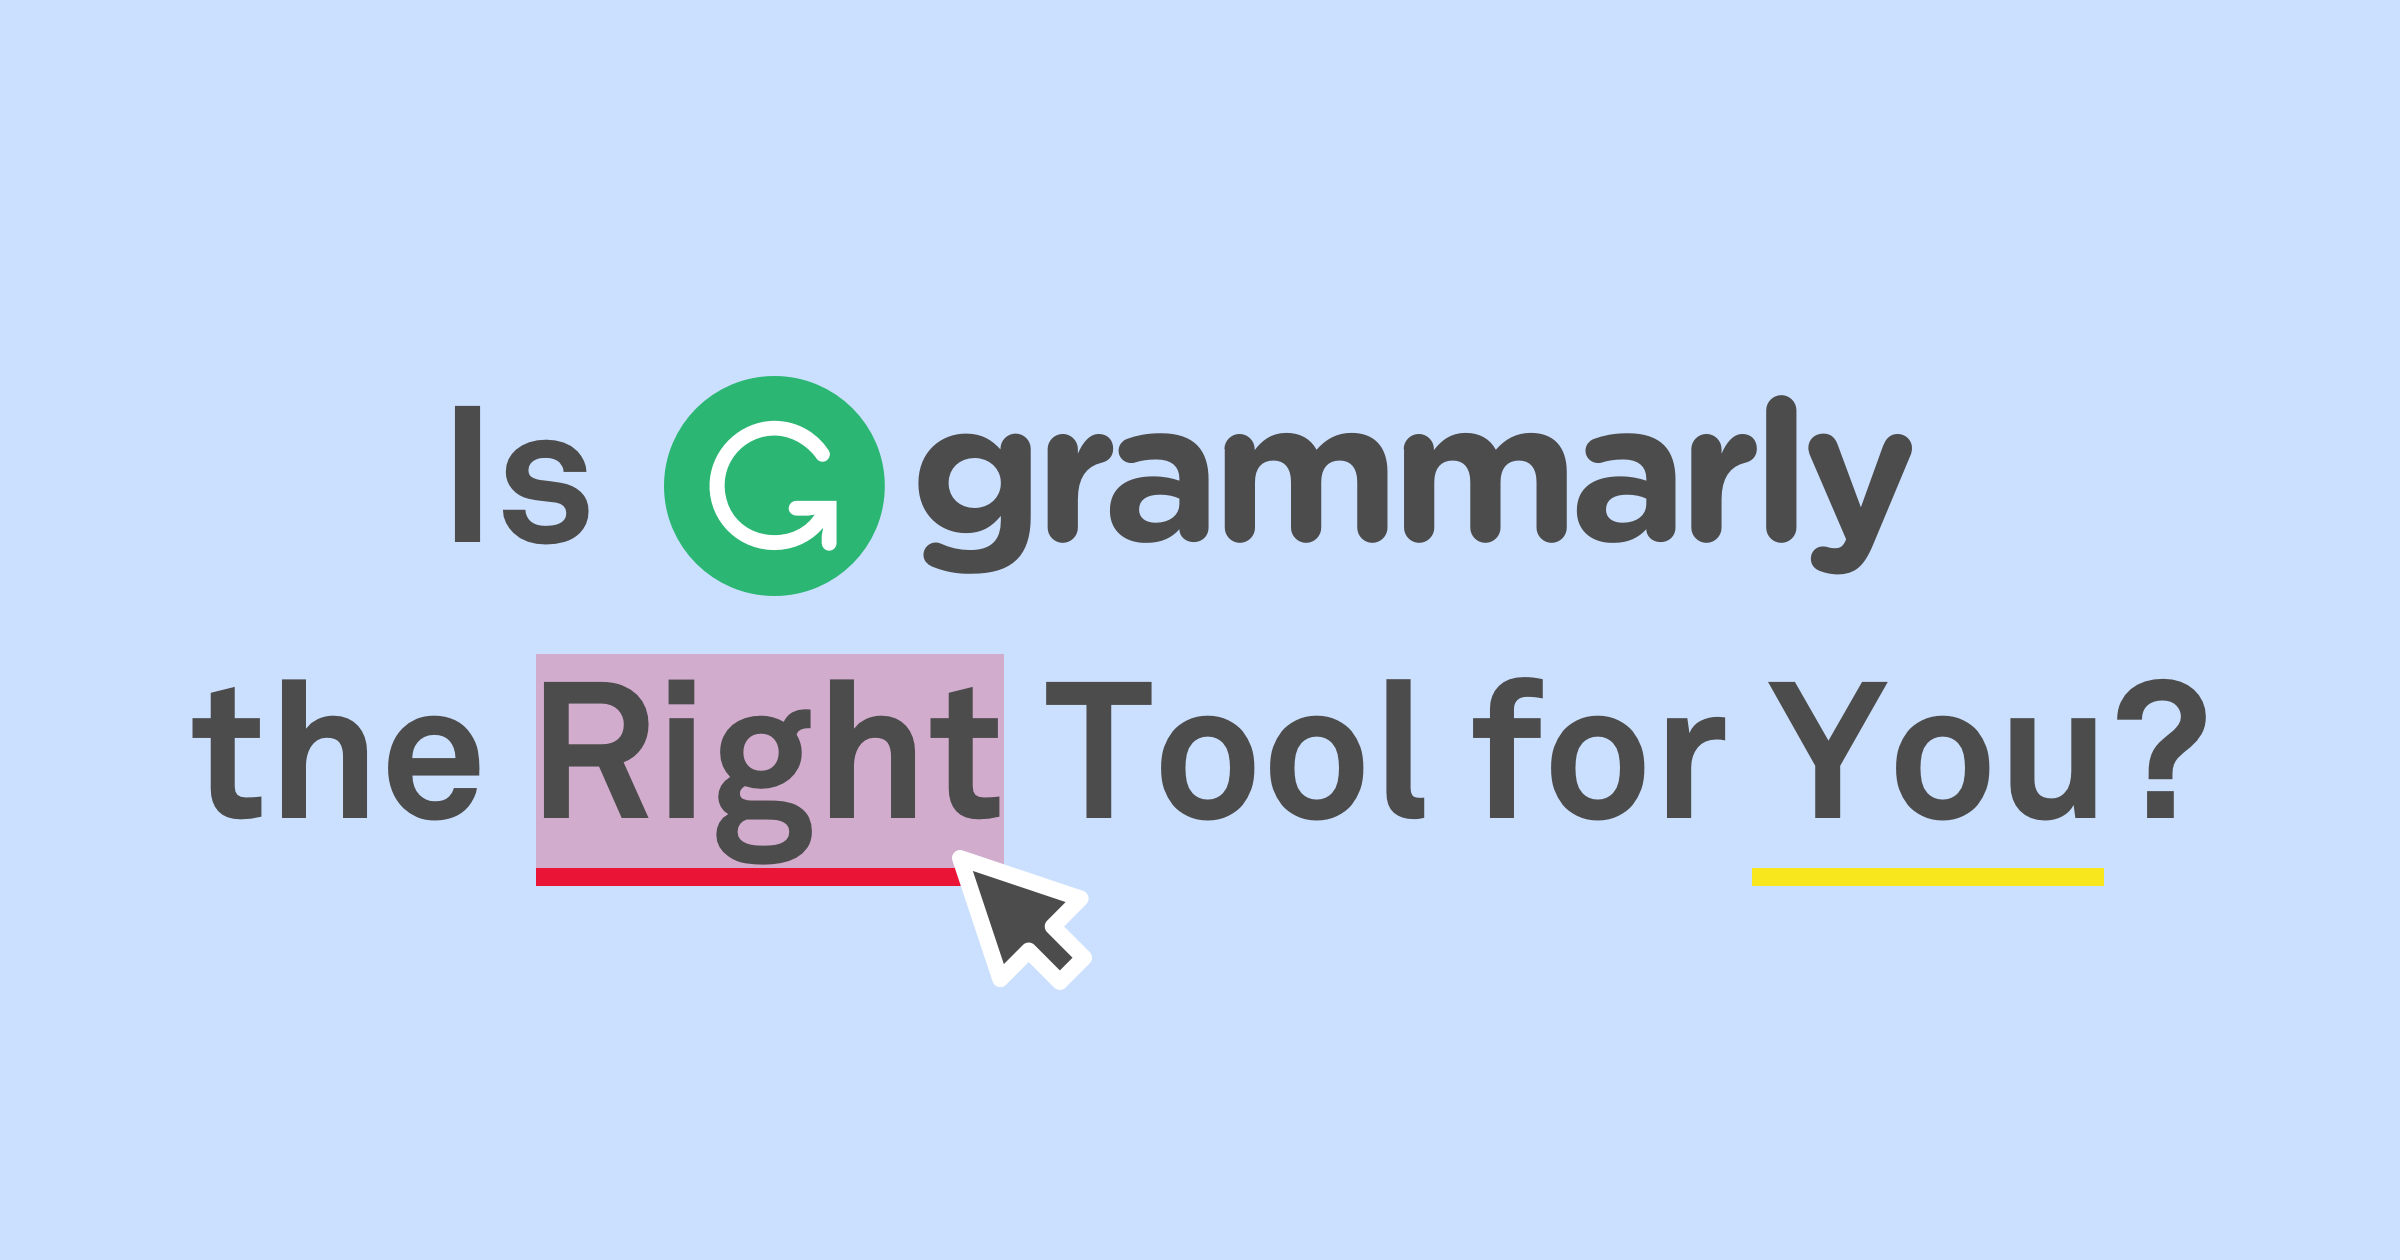 Grammarly General Audiances May Find This Hard To Read?